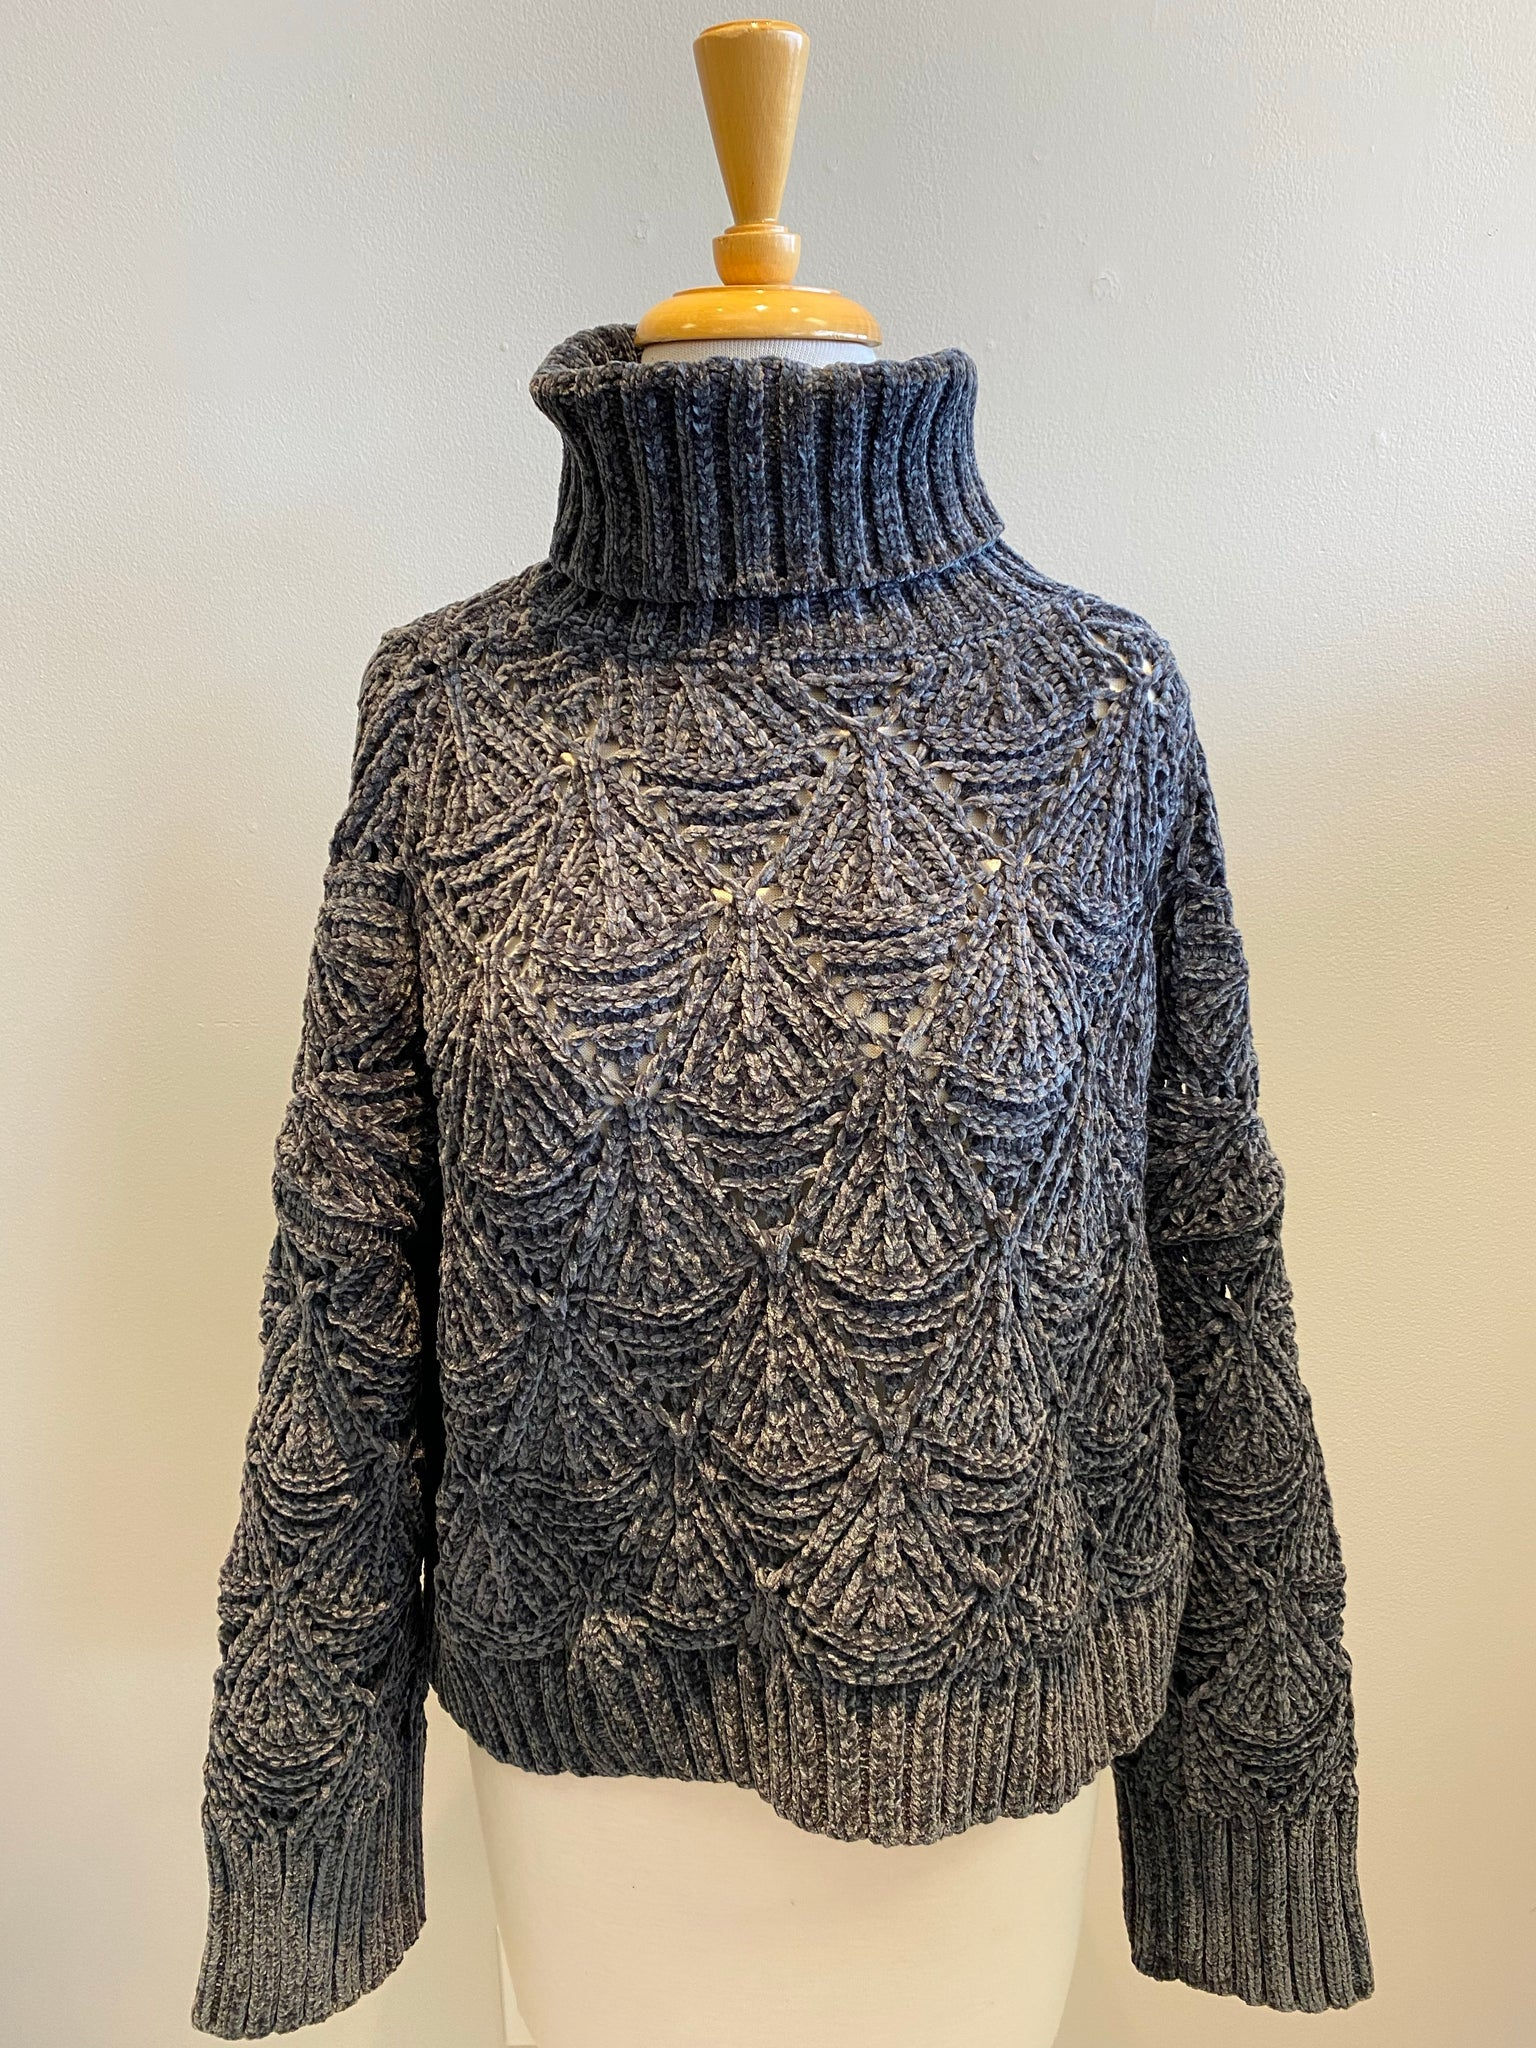 POL Woven Pattern Chenille Sweater - Showroom56